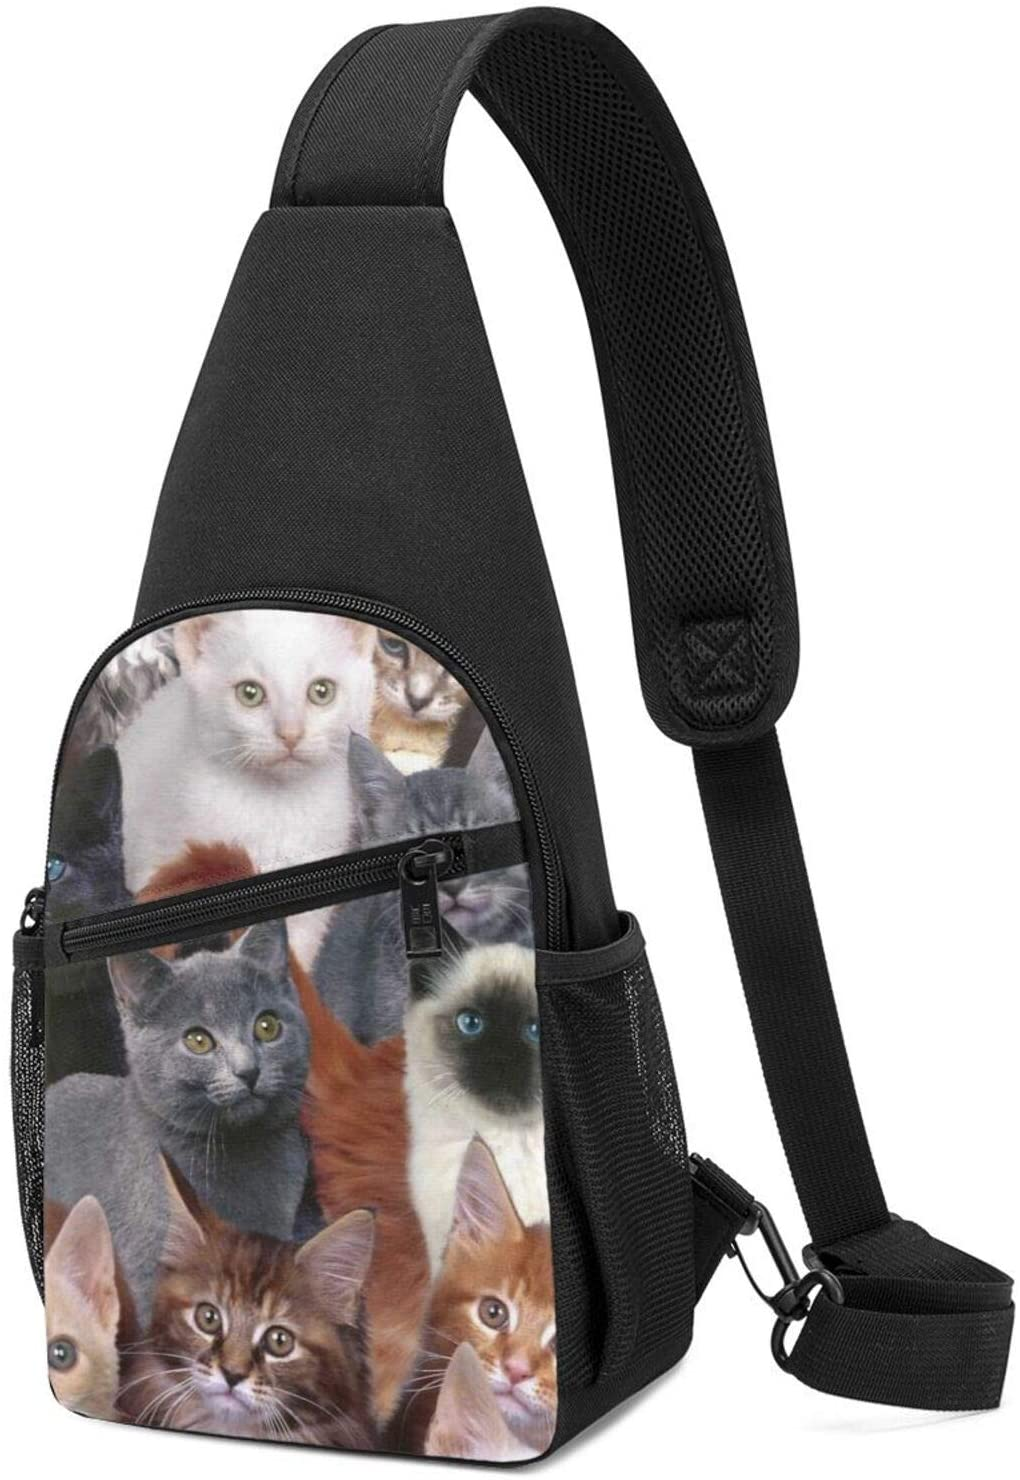 NiYoung Student Sling Bag Premium Cat Kitten Lovely Crossbody Bags Casual Chest Crossbody Anti-Theft Sling Bag Chest for Cycling, Running, Bicycle